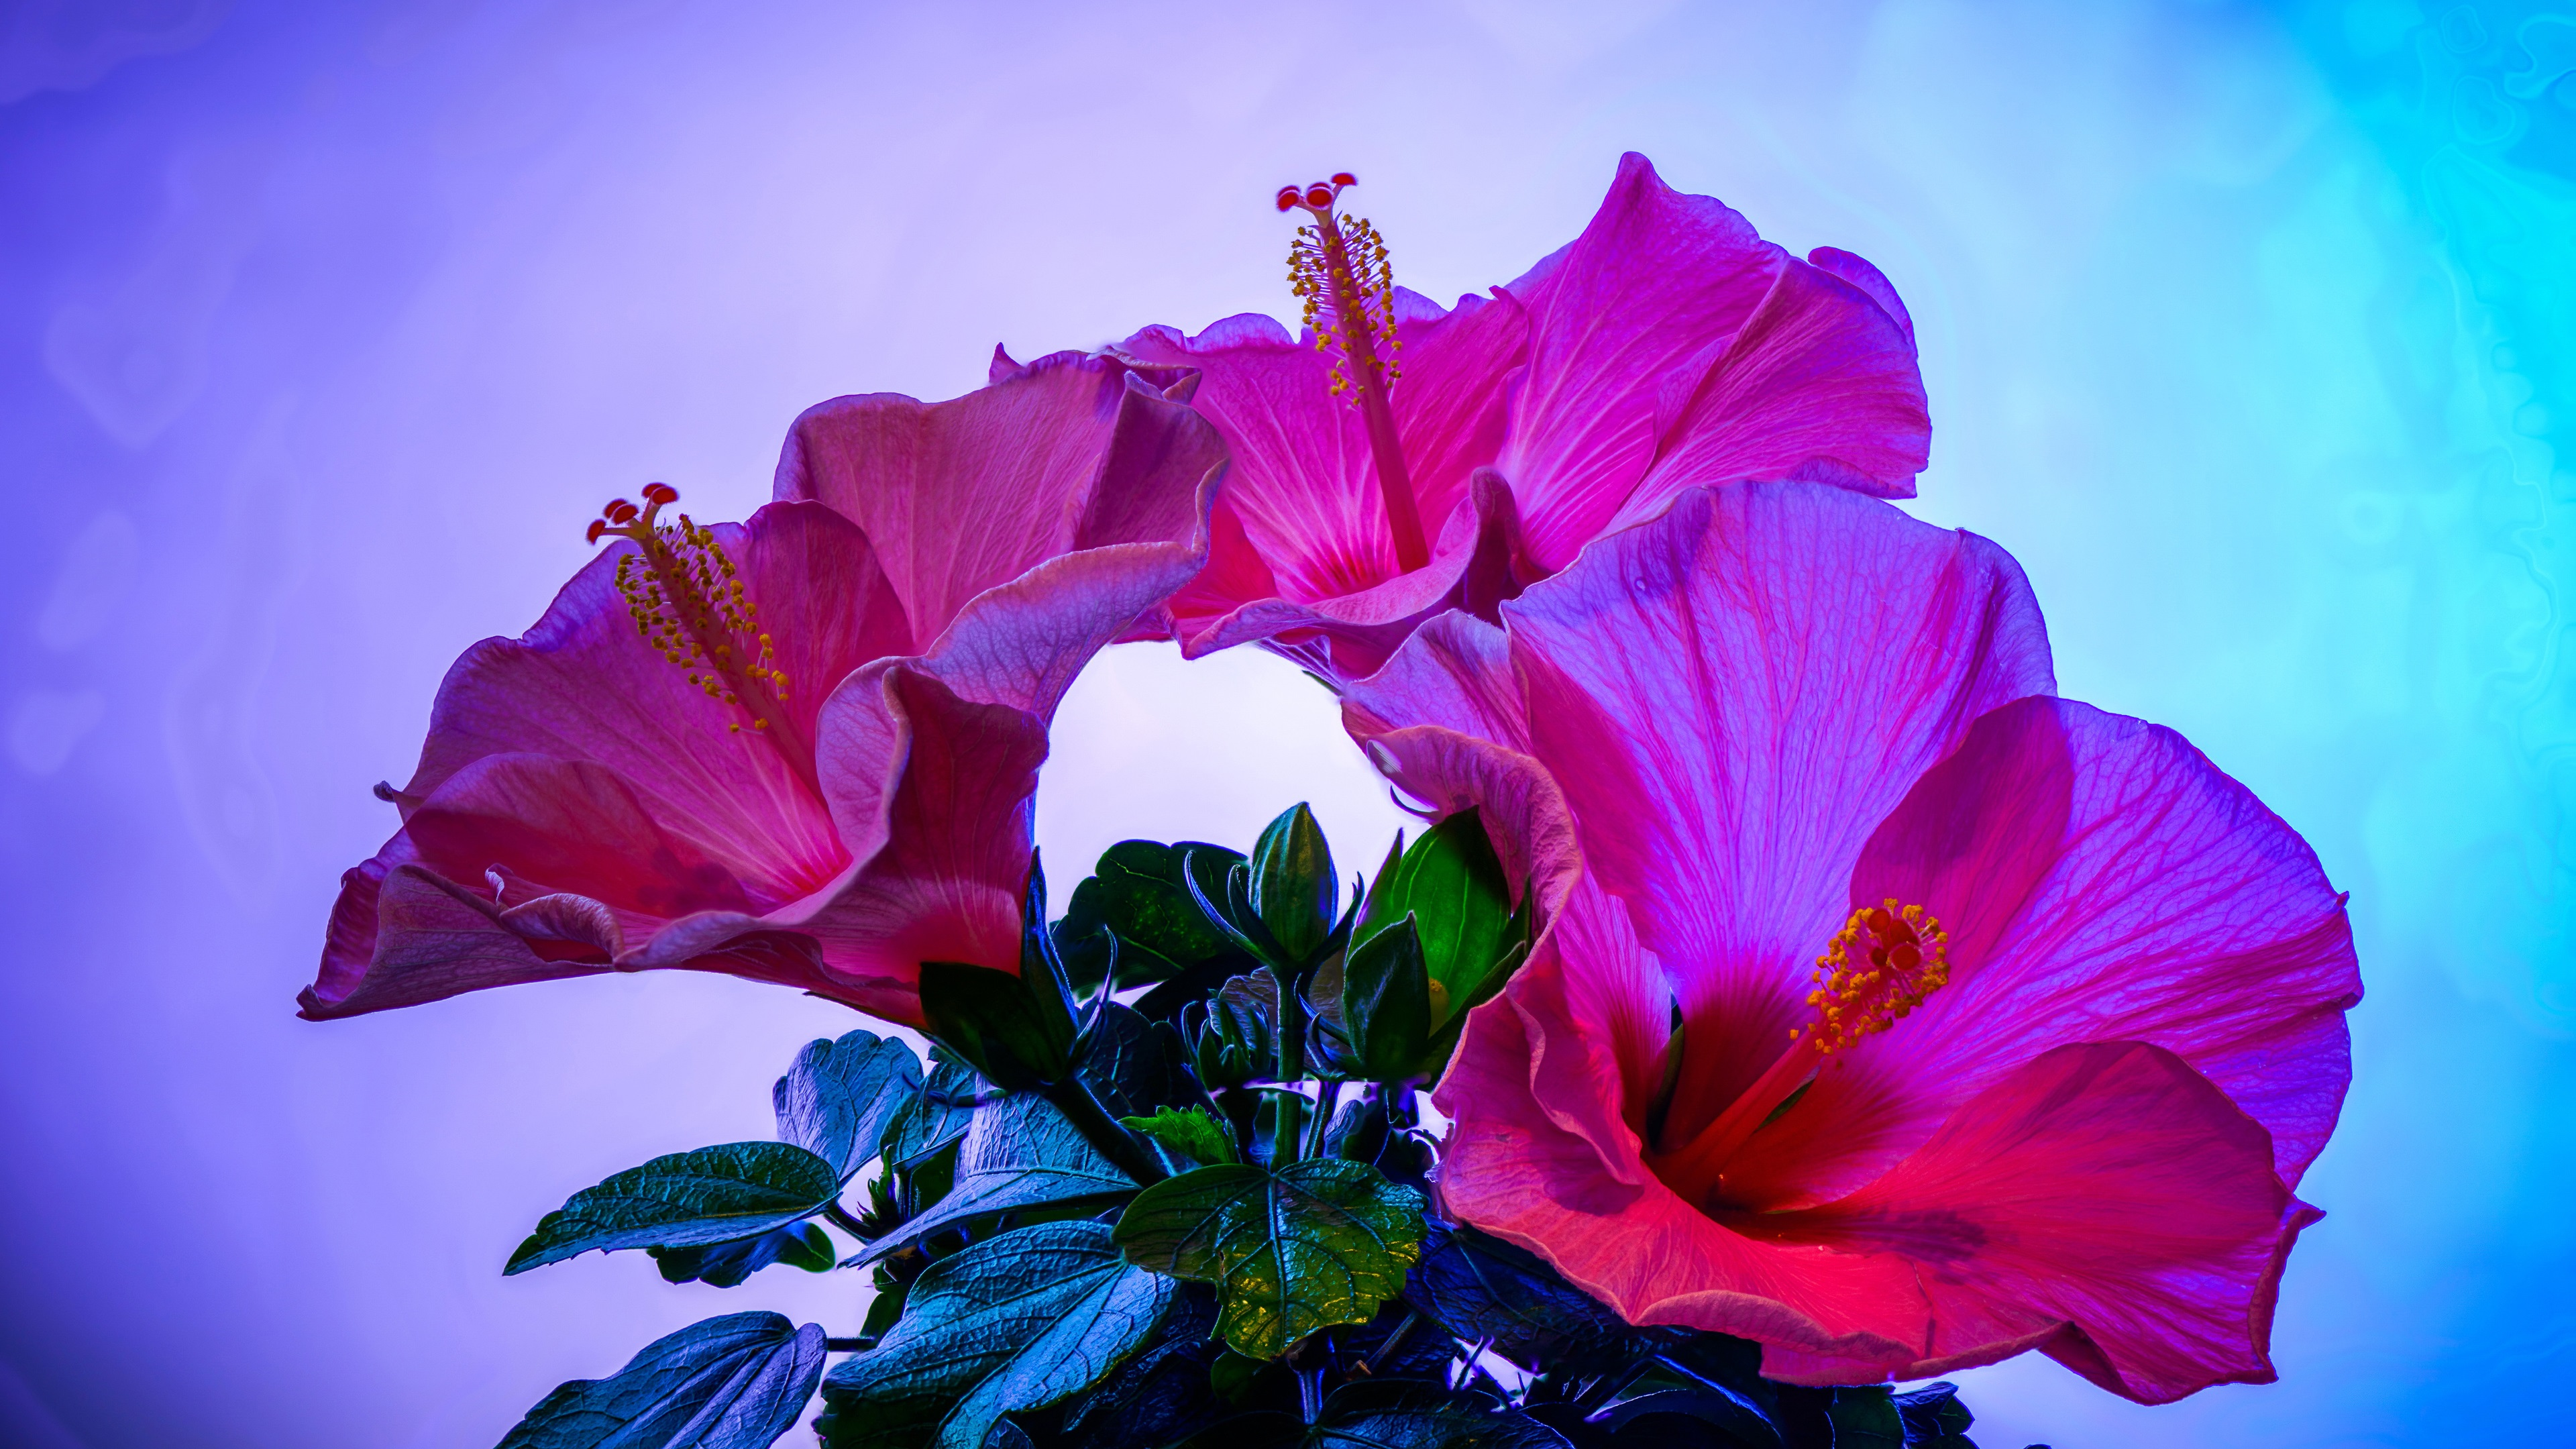 Wallpaper Pink Hibiscus Flowers Close Up Blue Background 3840x2160